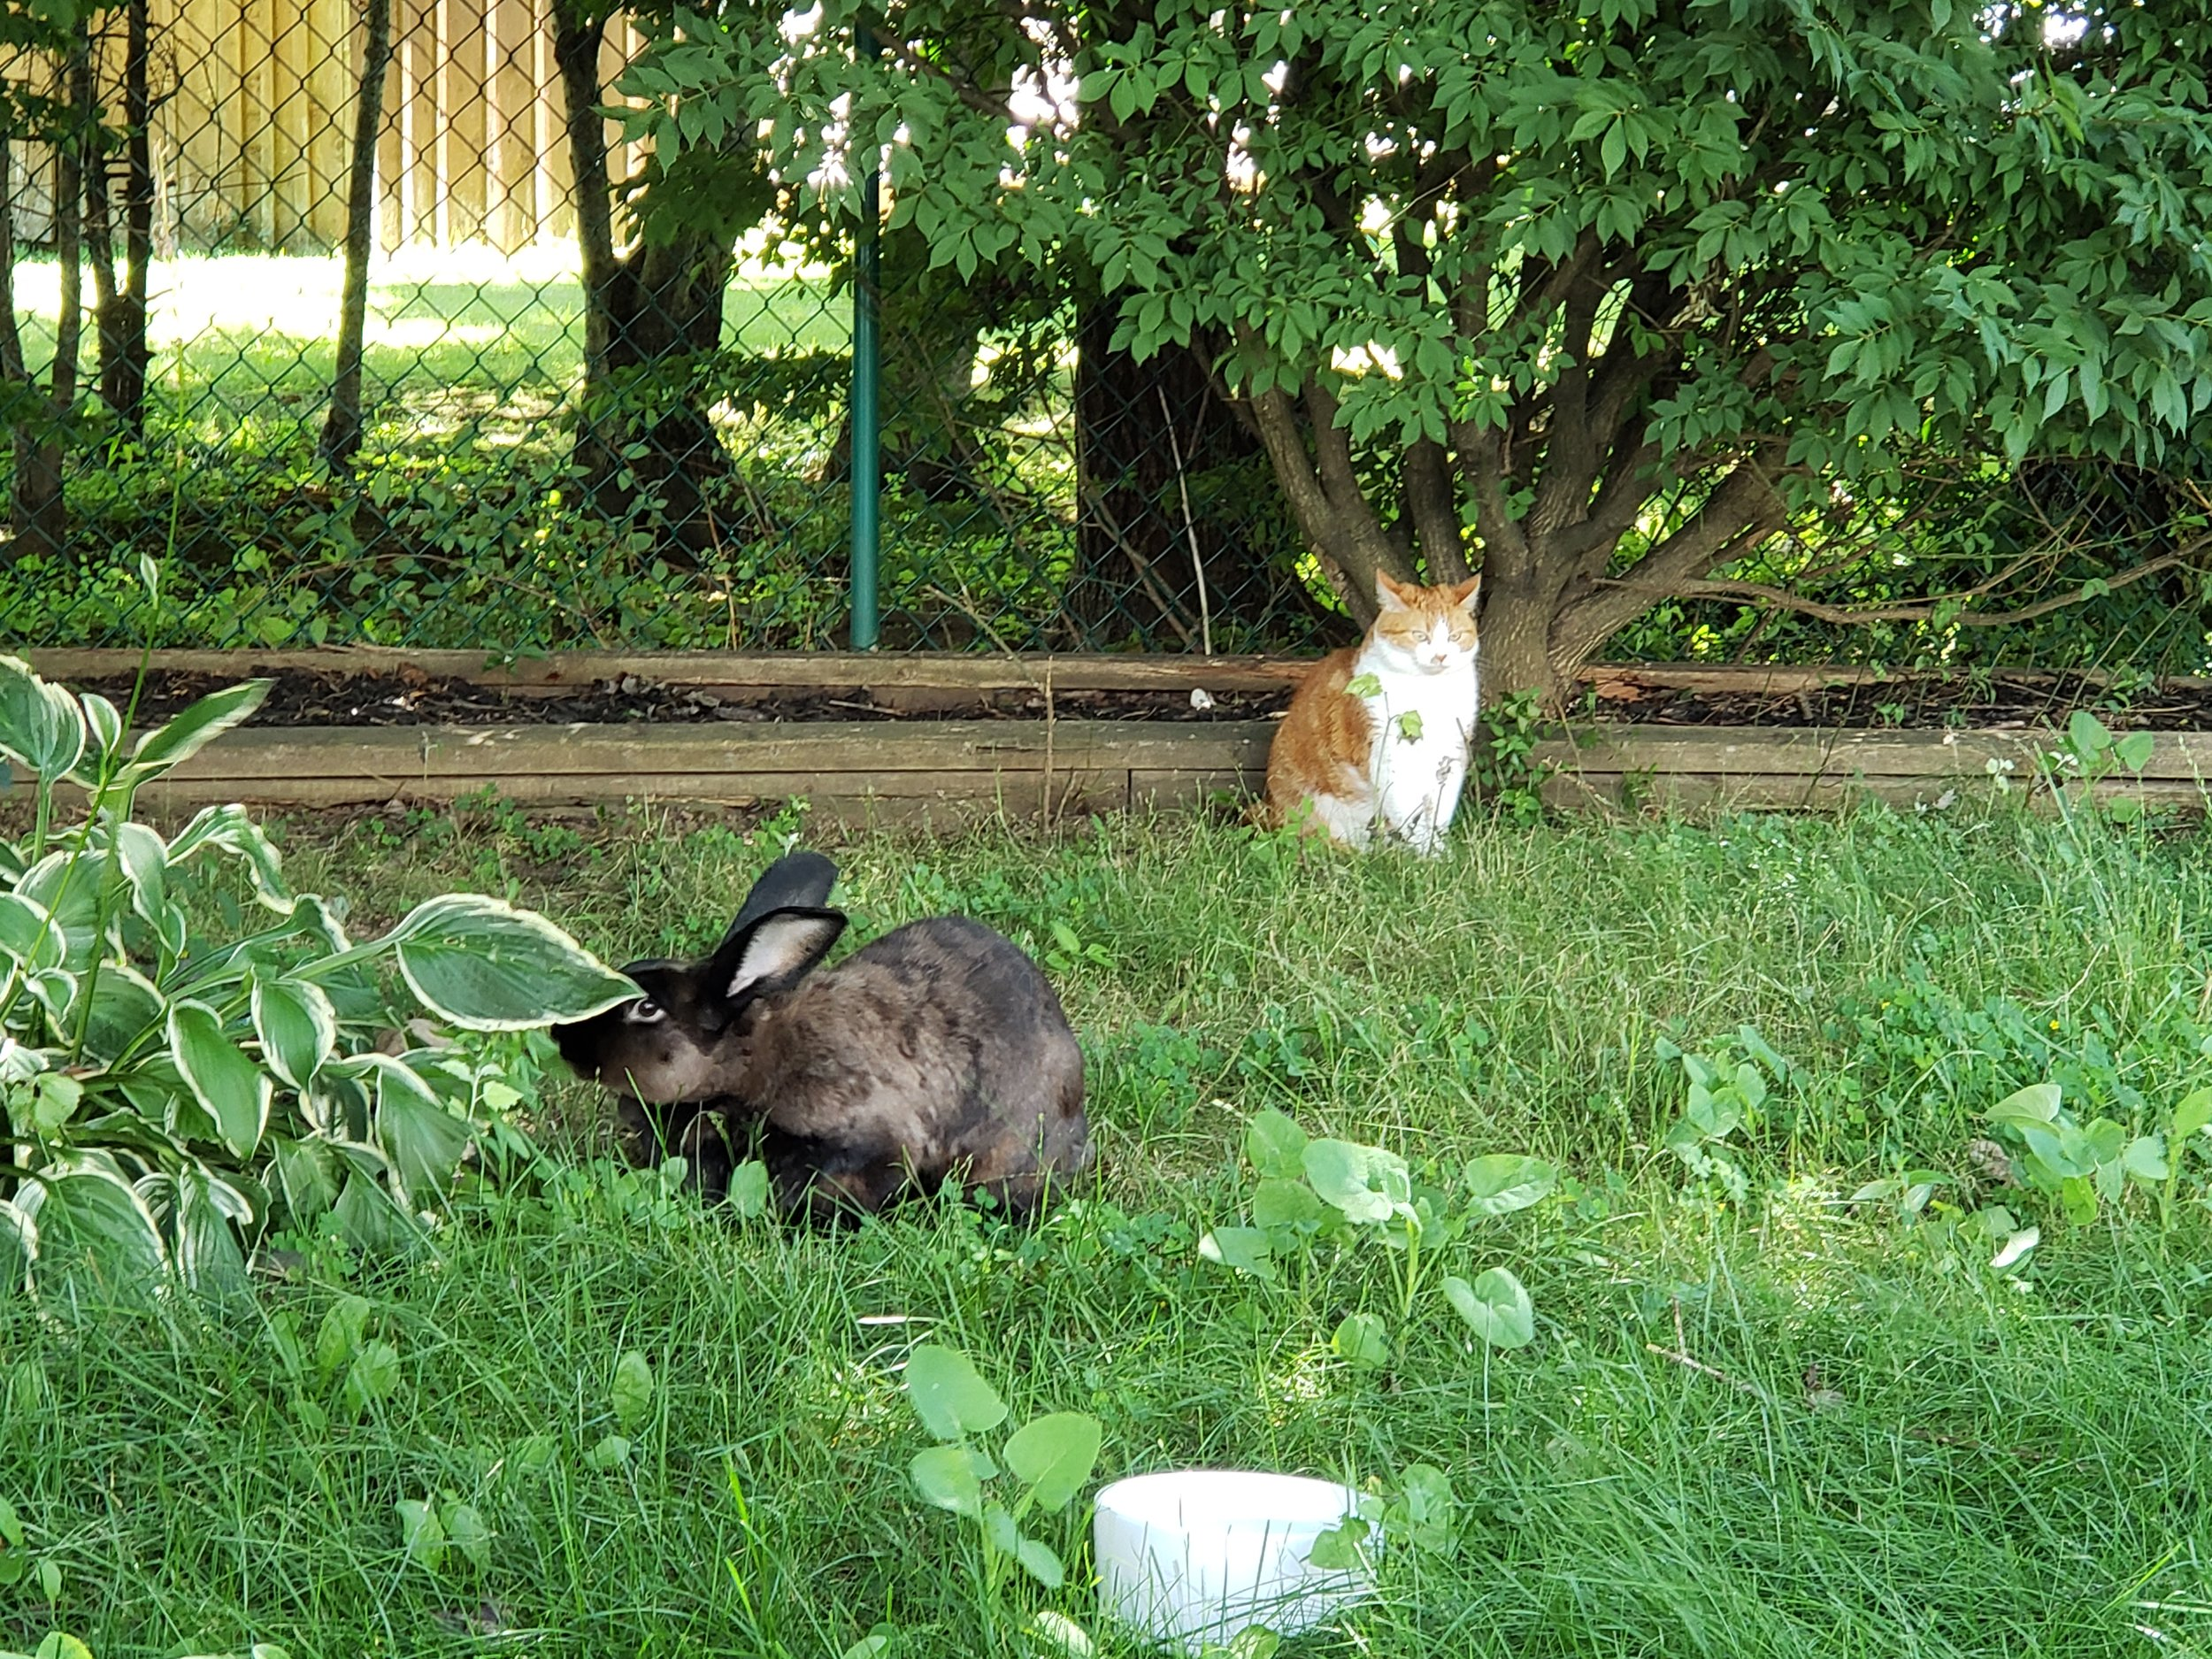 Clover enjoying a hosta and our cat looking so confused!